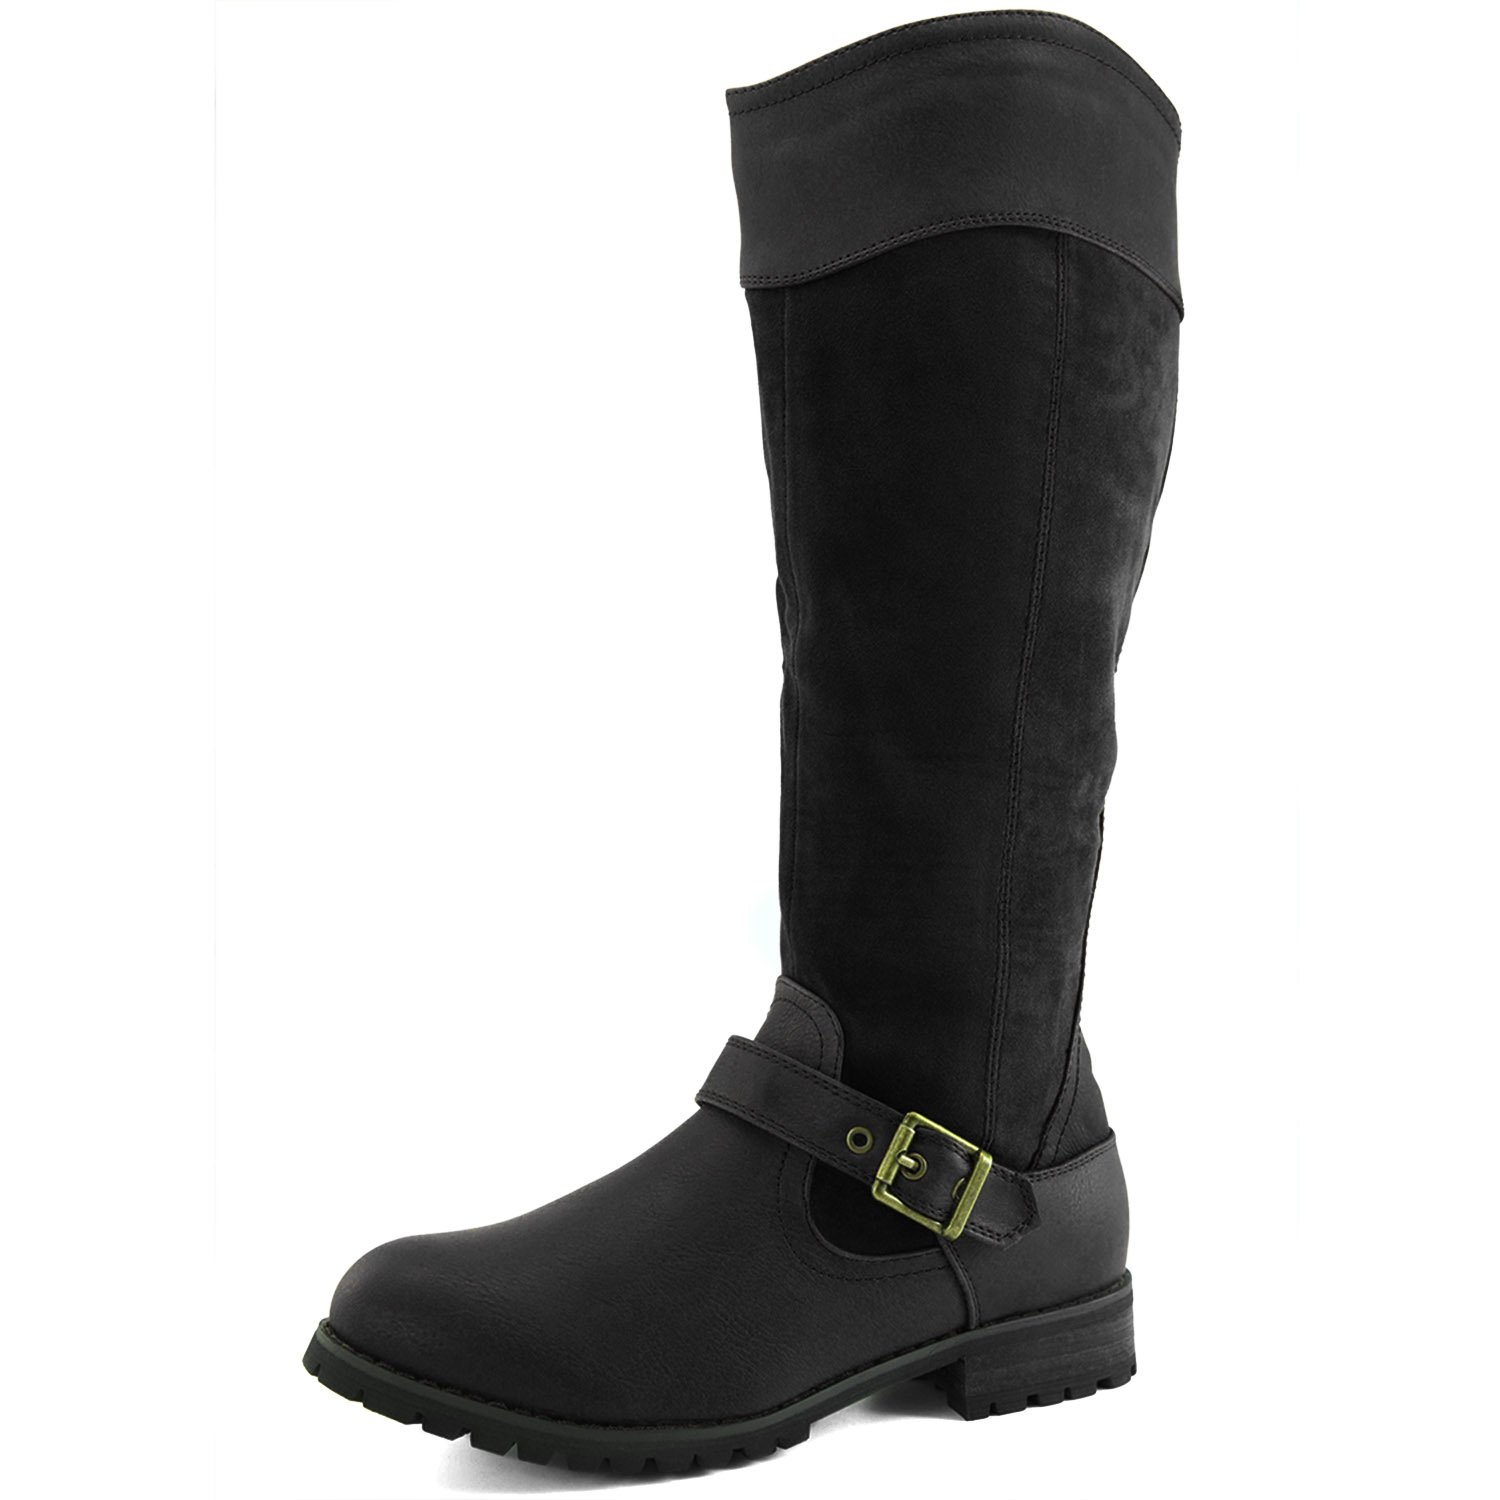 DailyShoes Women's Knee High Ankle Buckle Strap Military Combat Boots, 9 B(M) US Black SV